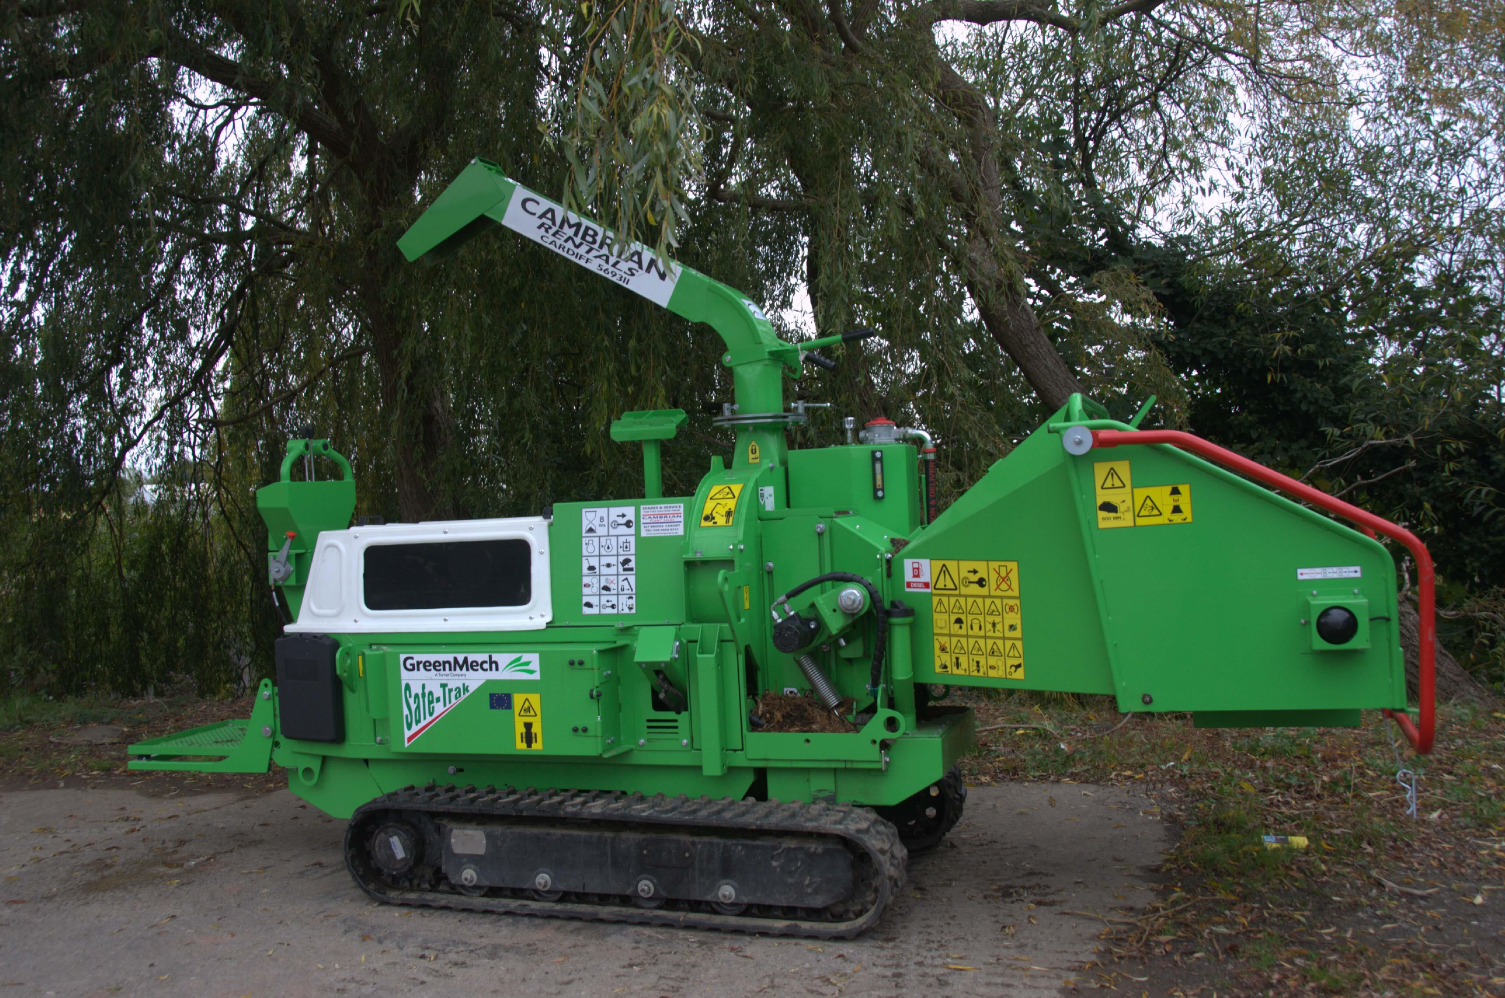 GreenMech SAFE-Trak 19-28 Tracked Wood Chipper For Sale